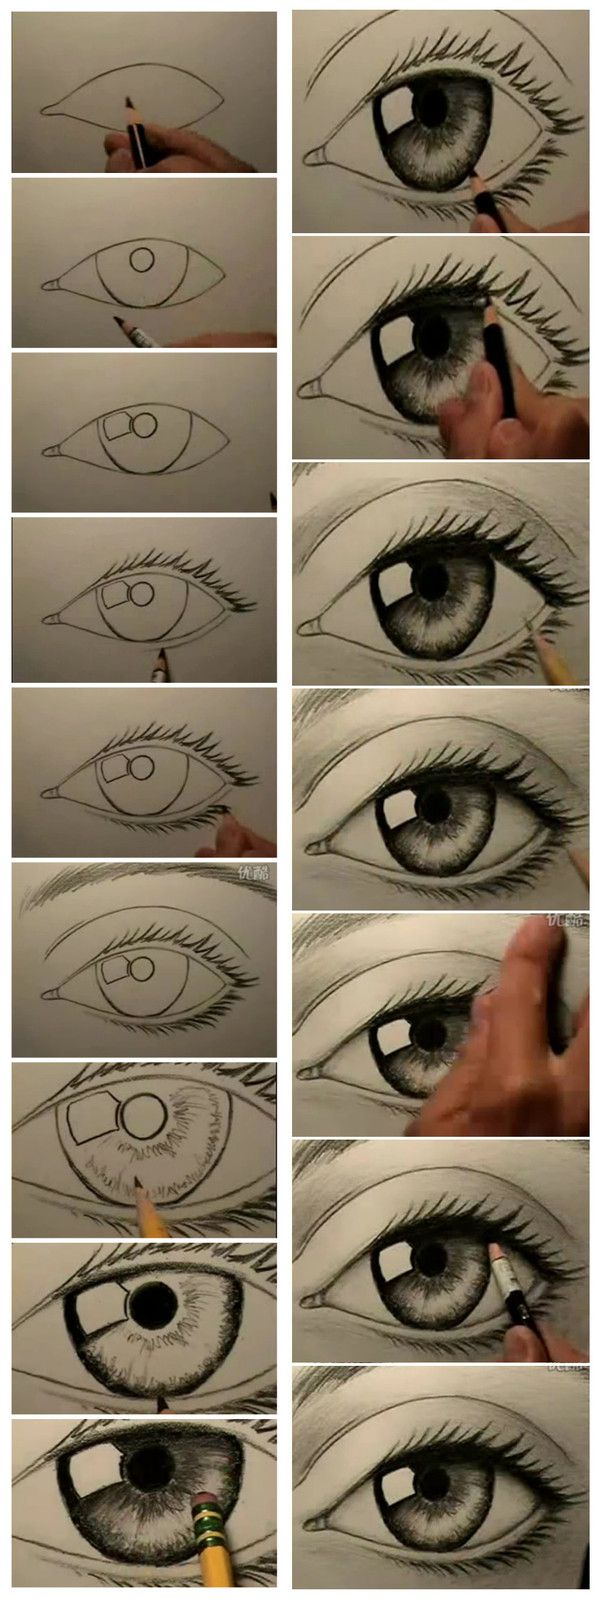 How to draw eyes...I will try but I am NOT an artist.  How I wish I was though.